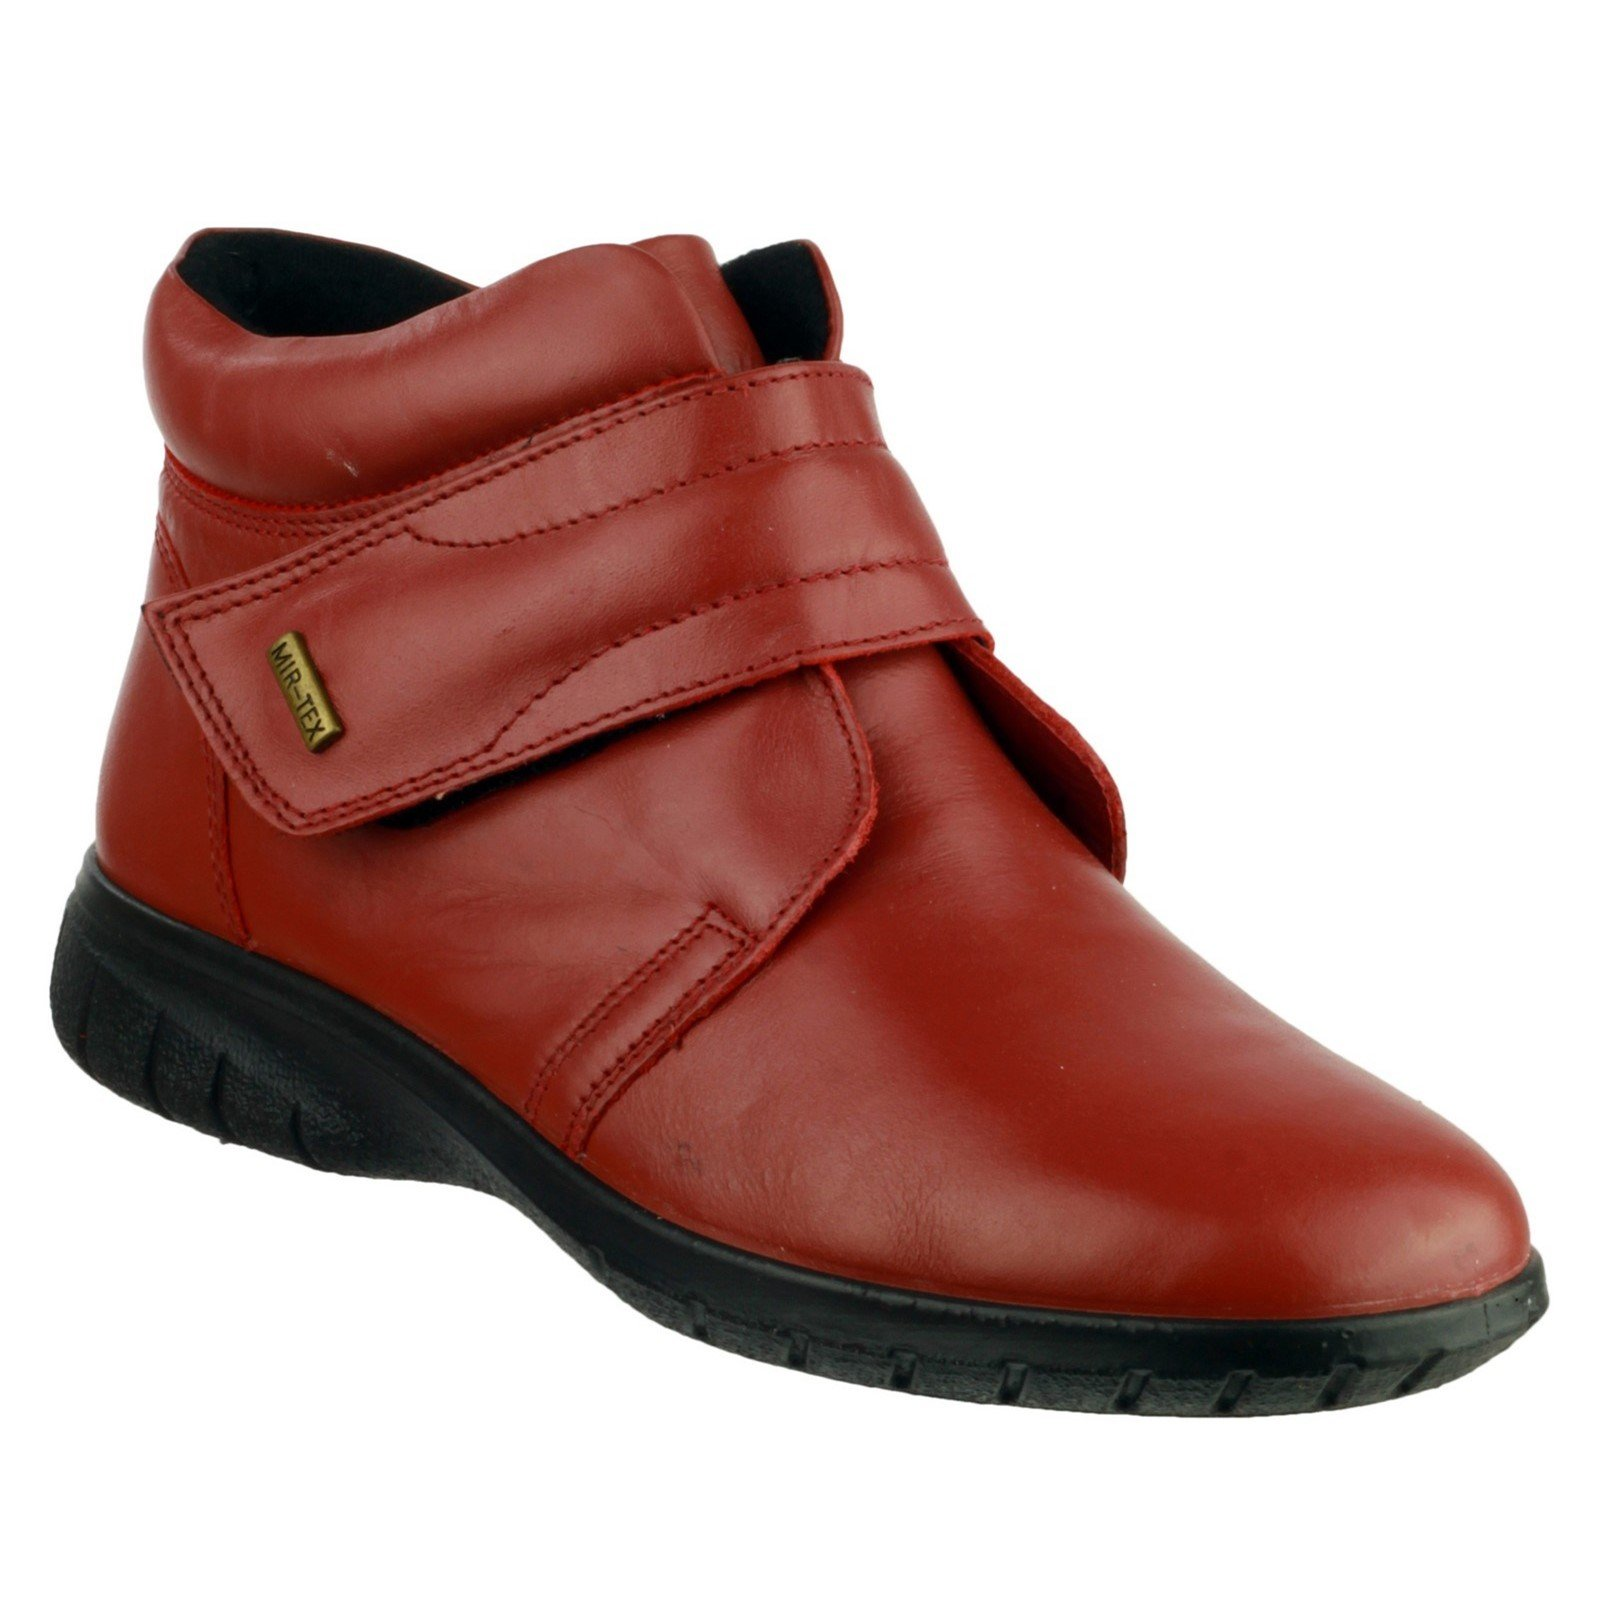 Cotswold Women's Chalford 2 Ankle Boot Various Colours 32977 - Red 6